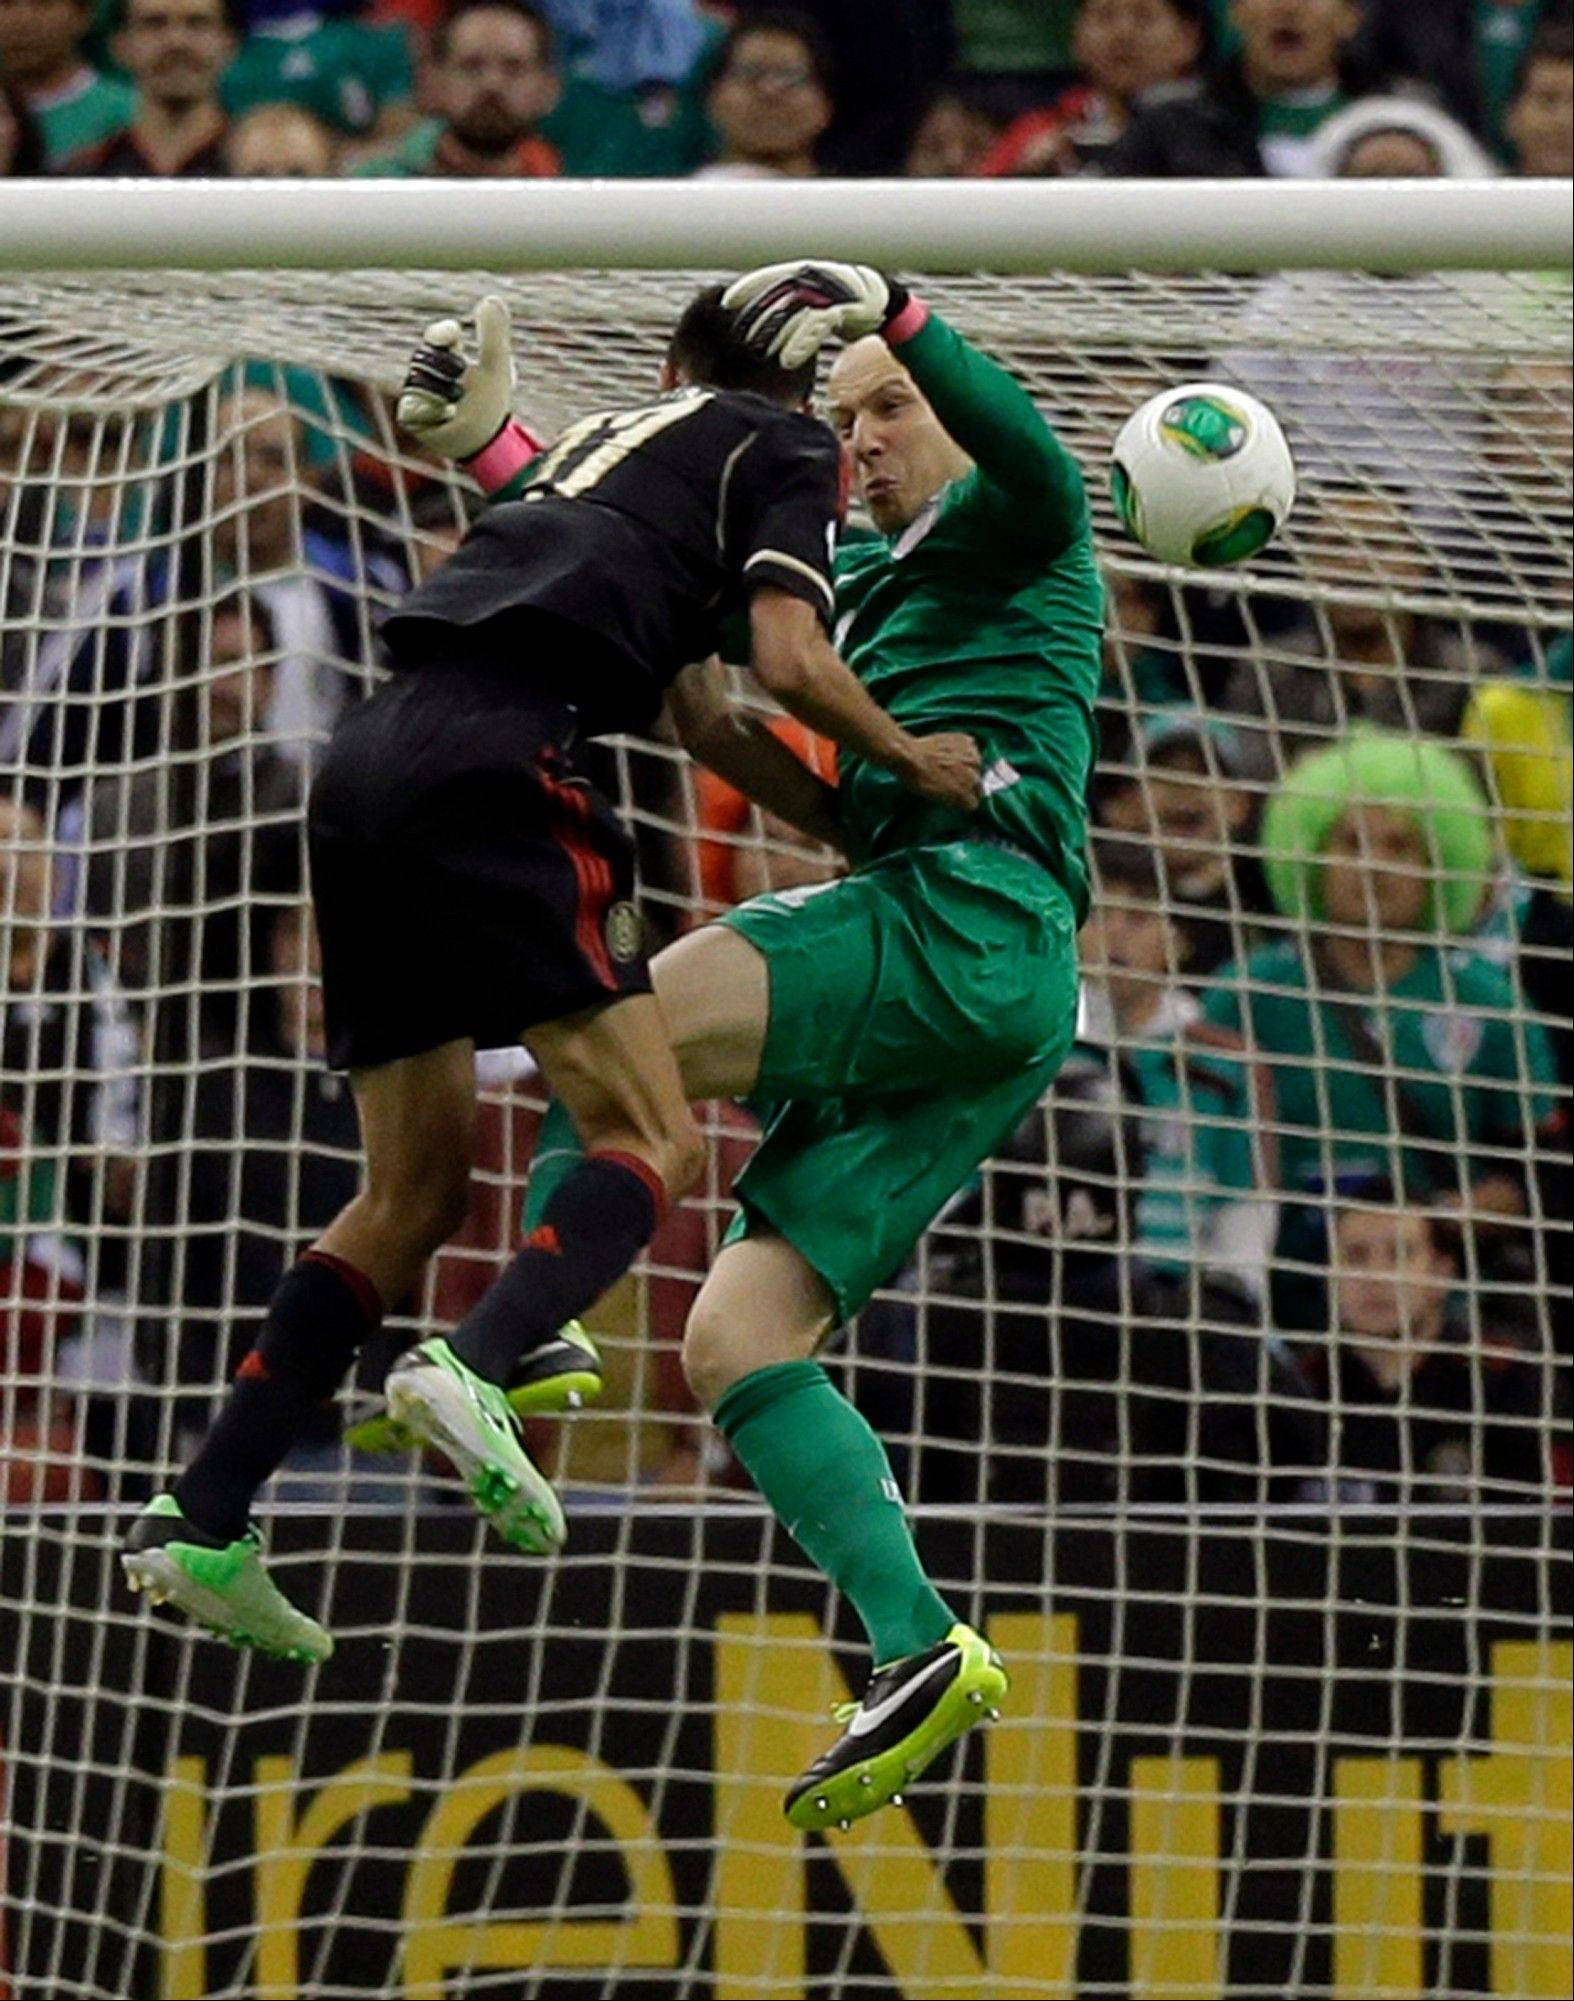 Mexico�s Jesus Zabala, left, collides with United States goalkeeper Brad Guzan while trying to score during a 2014 World Cup qualifying match Tuesday at the Aztec stadium in Mexico City.